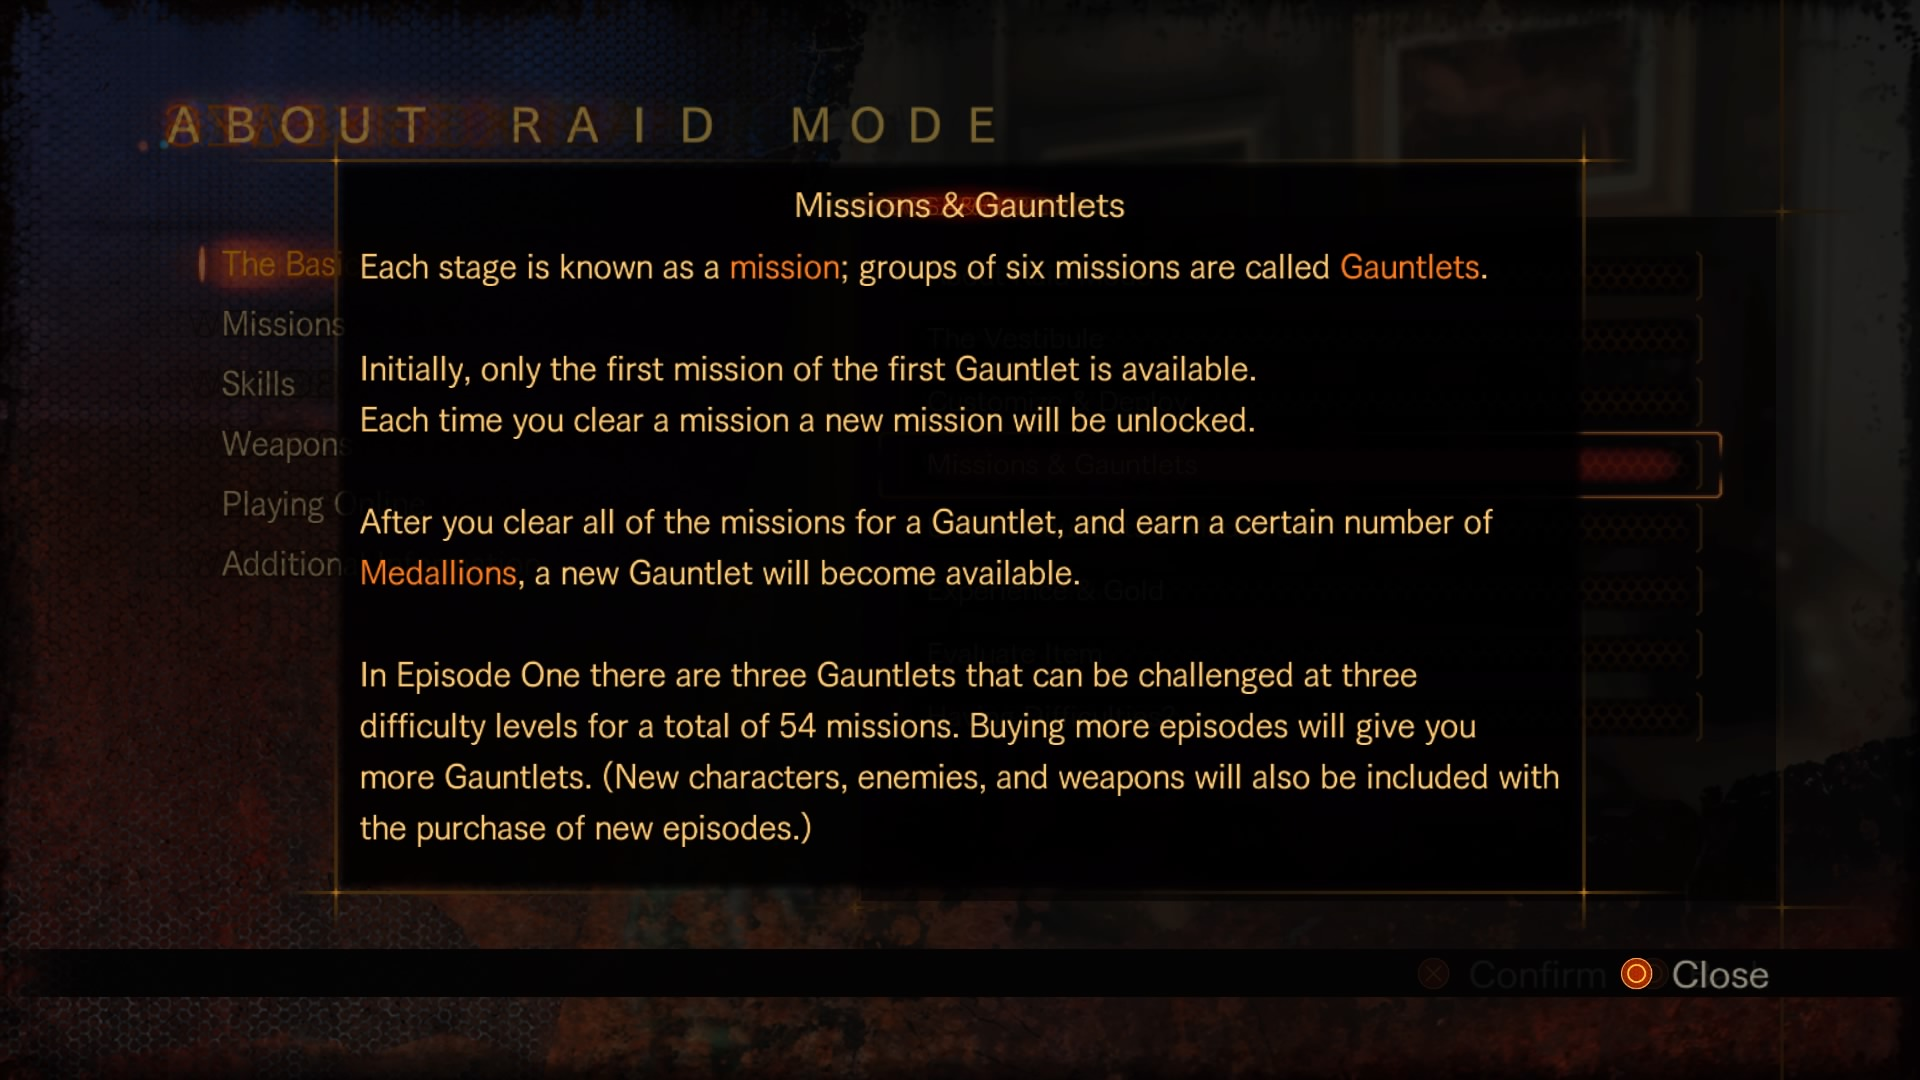 Missions & Gauntlets